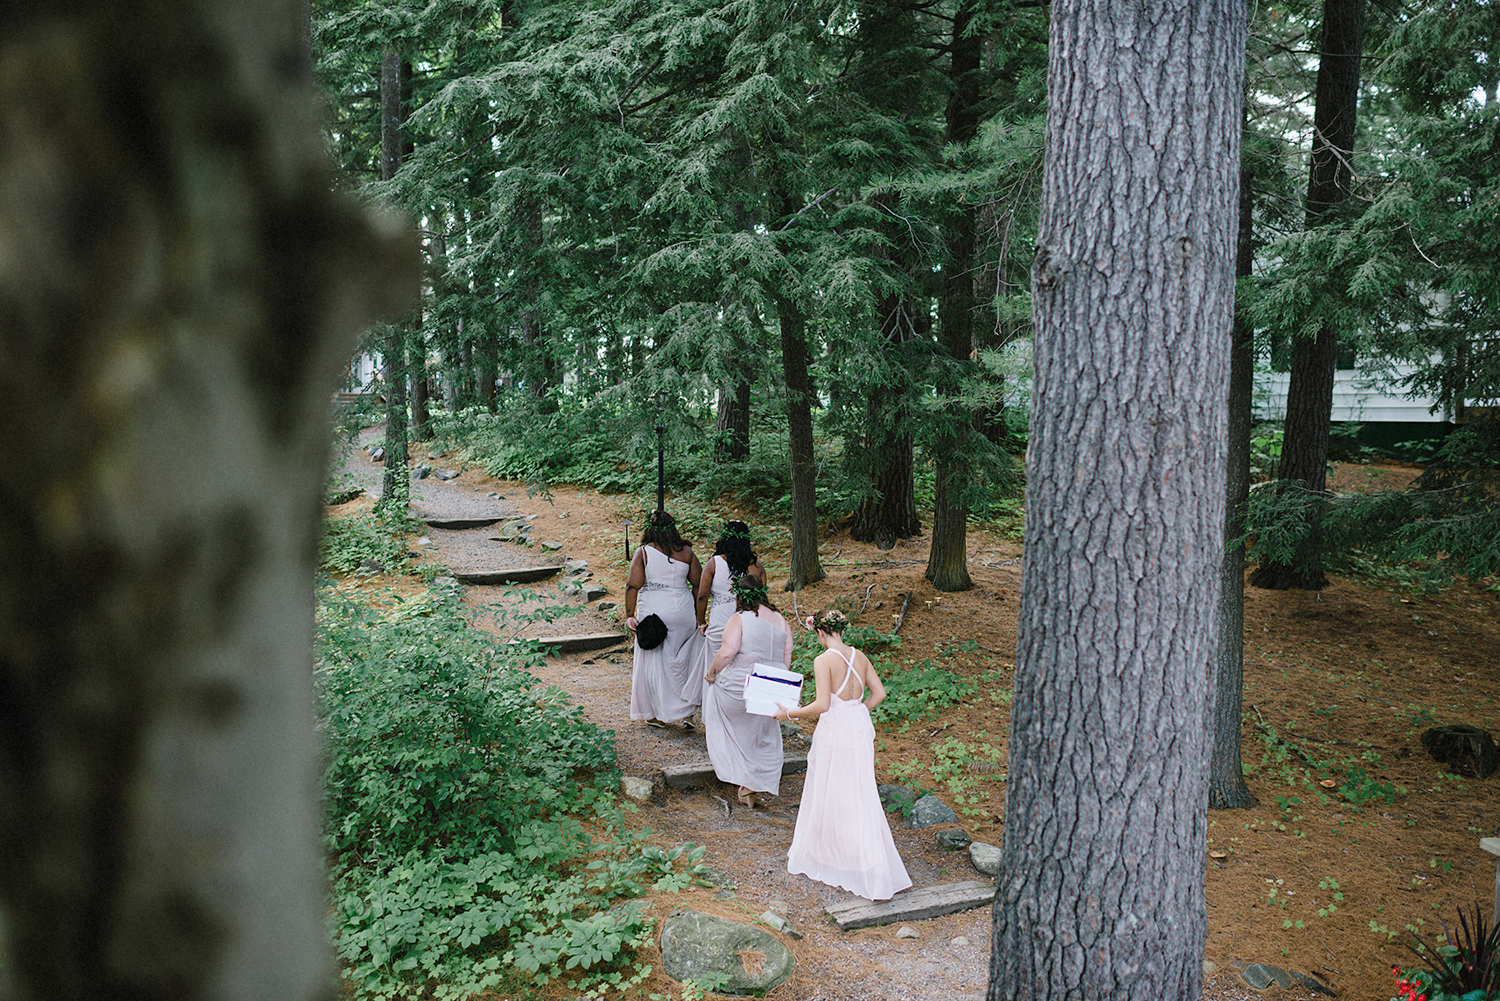 Muskoka-Cottage-Wedding-Photography-Photographer_Photojournalistic-Documentary-Wedding-Photography_Vintage-Bride-Sherwood-Inn-Lake-Wedding-Venue_Bridesmaids-Details.jpg